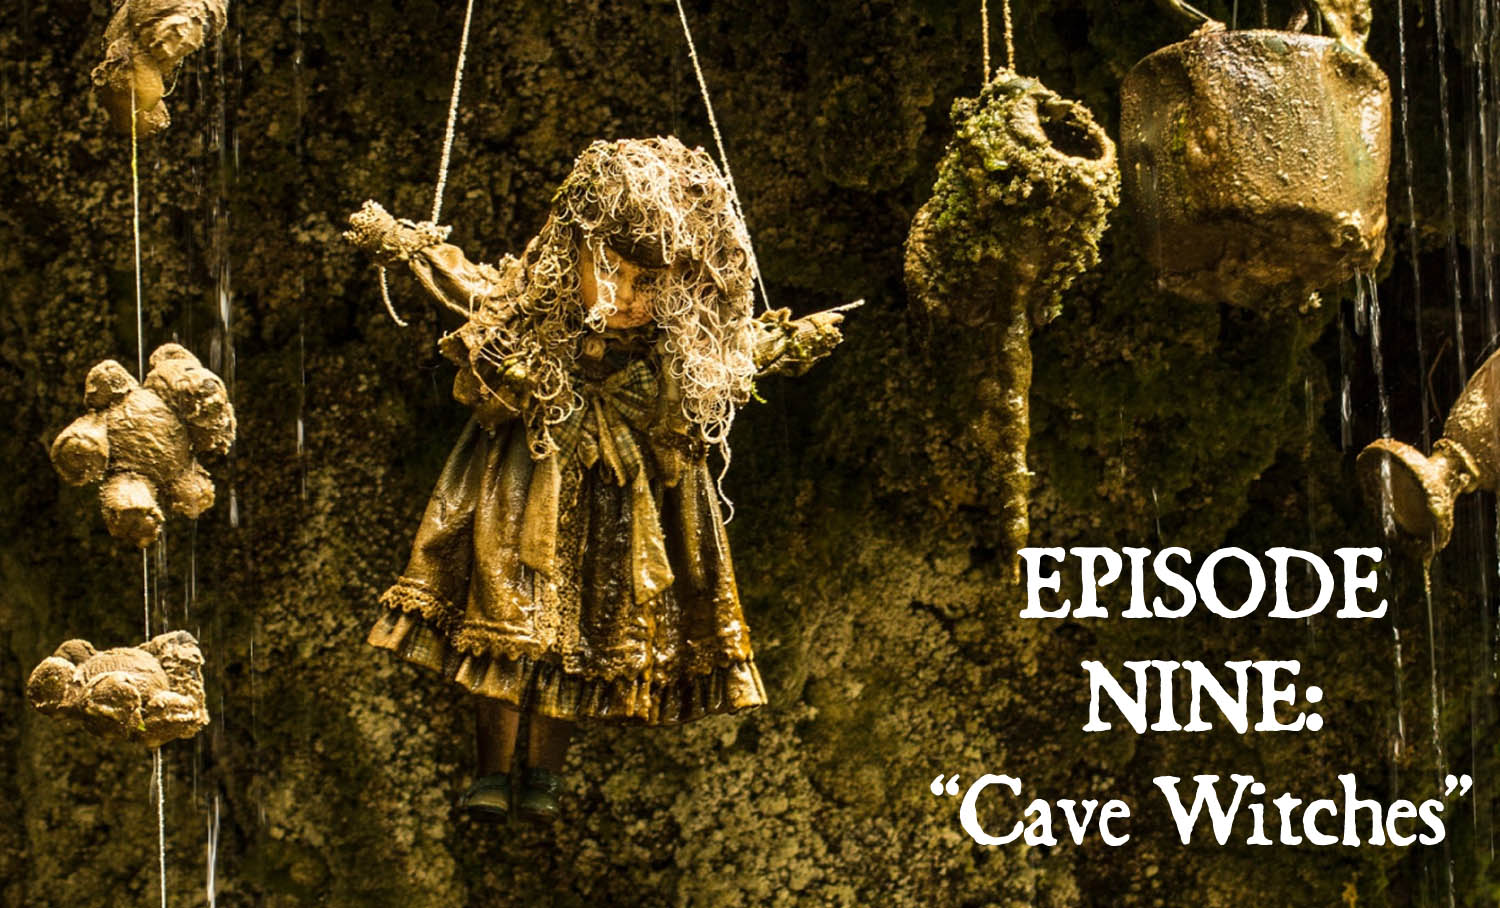 Episode 9: Cave Witches Bone and Sickle CAVE WITCHES